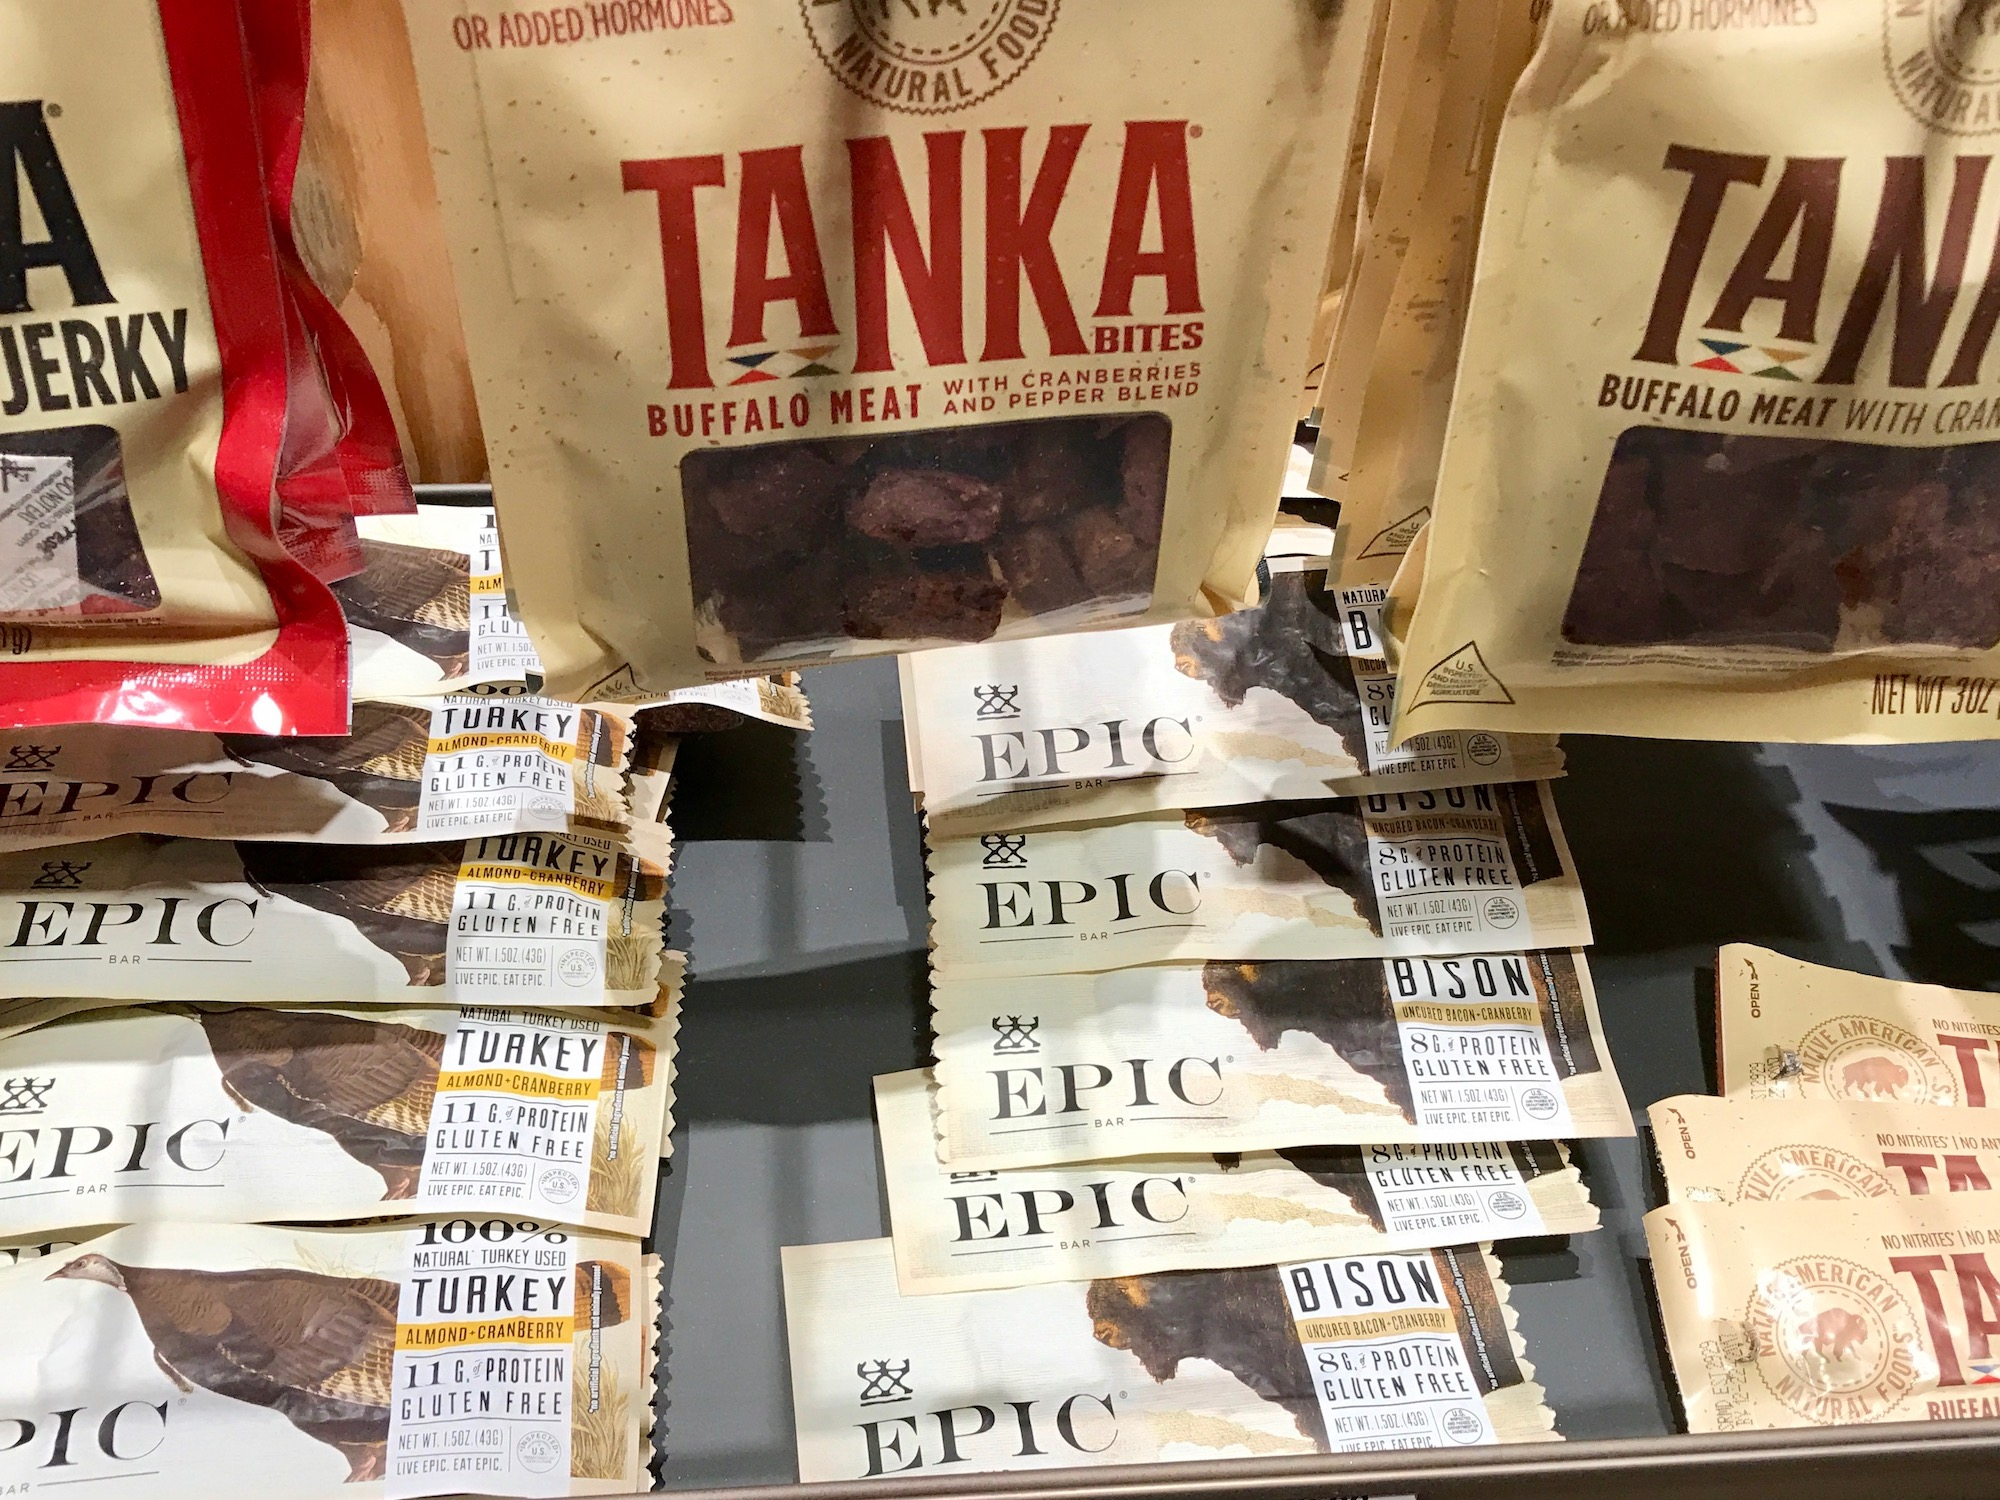 Lakota Country Times: 'Tanka Bar' company recognized as leader in world business community